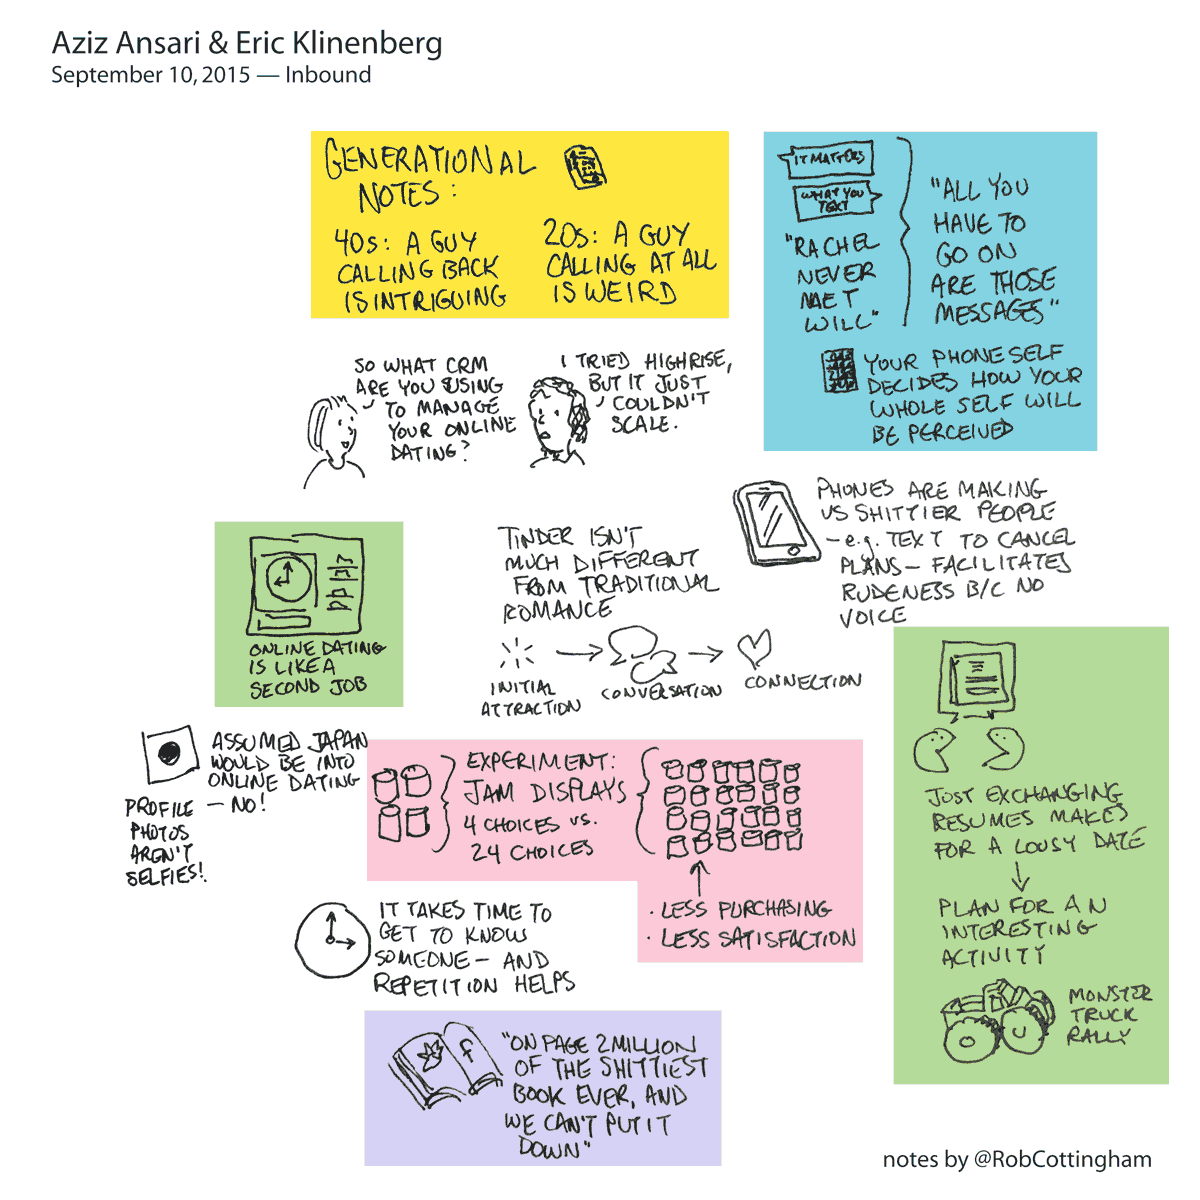 Sketchnotes from an Inbound presentation by Aziz Ansari and Eric Klinenberg